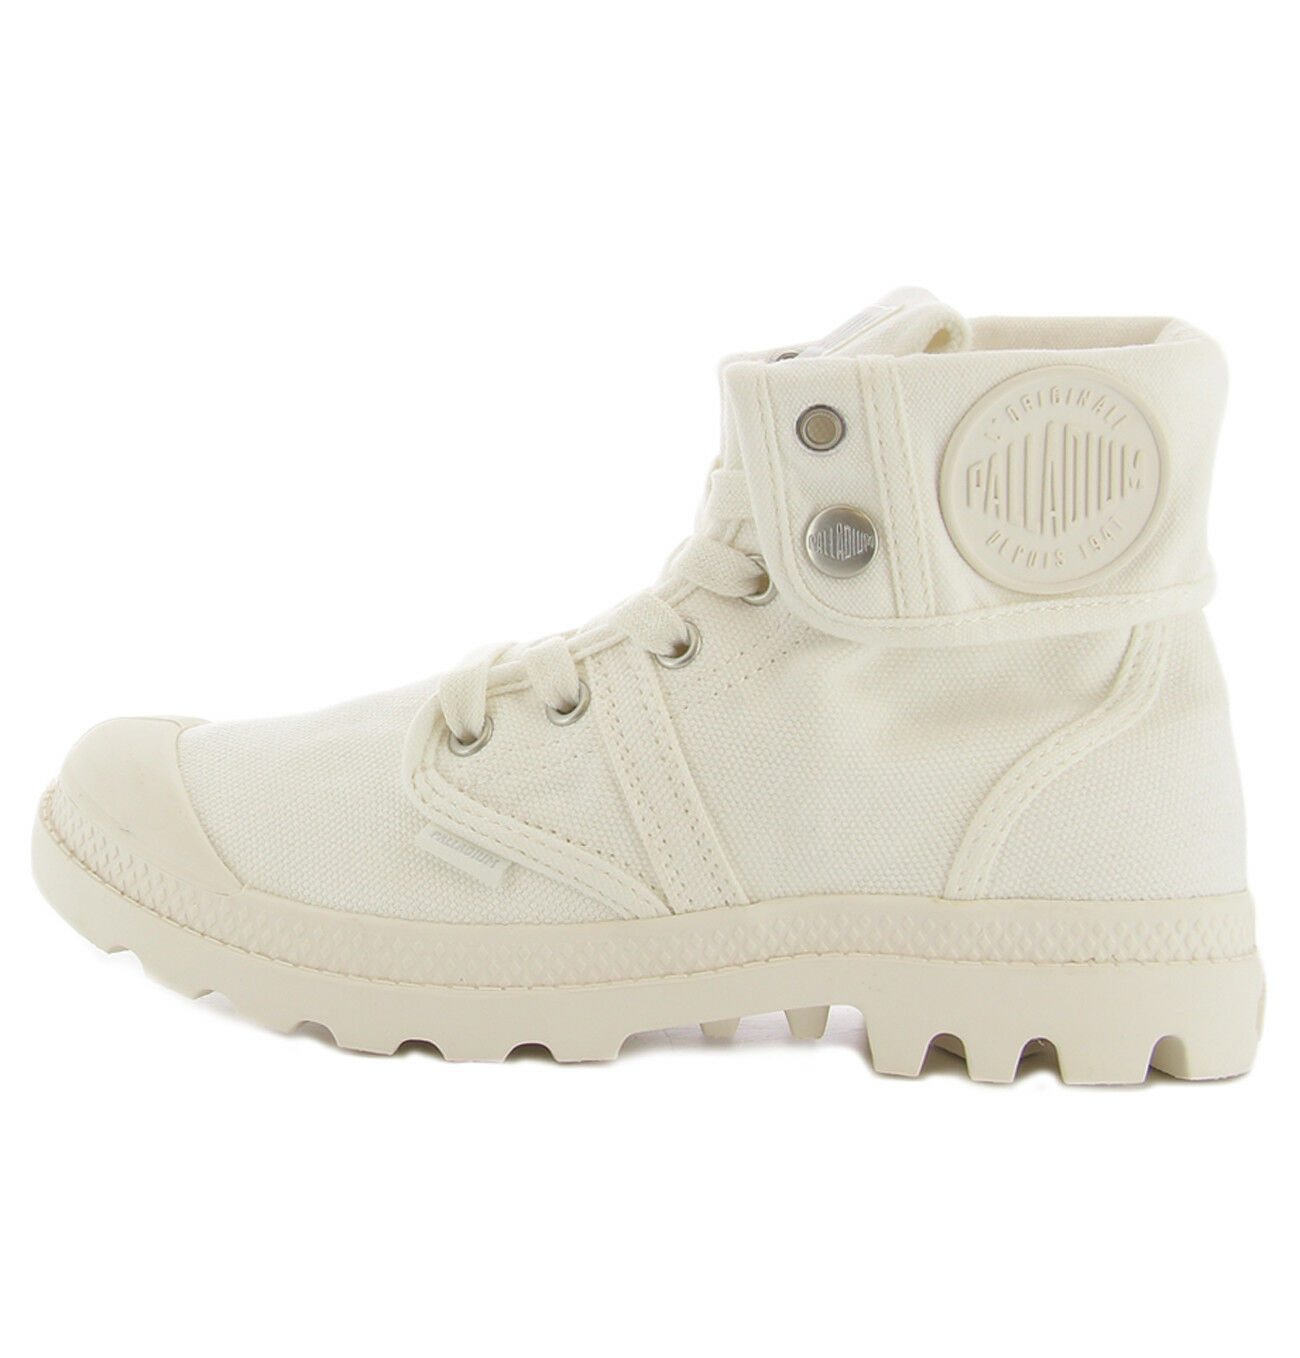 shoes Pallabrouse whitehes Palladium pour femme Palladium LADY PALLABROUSEW